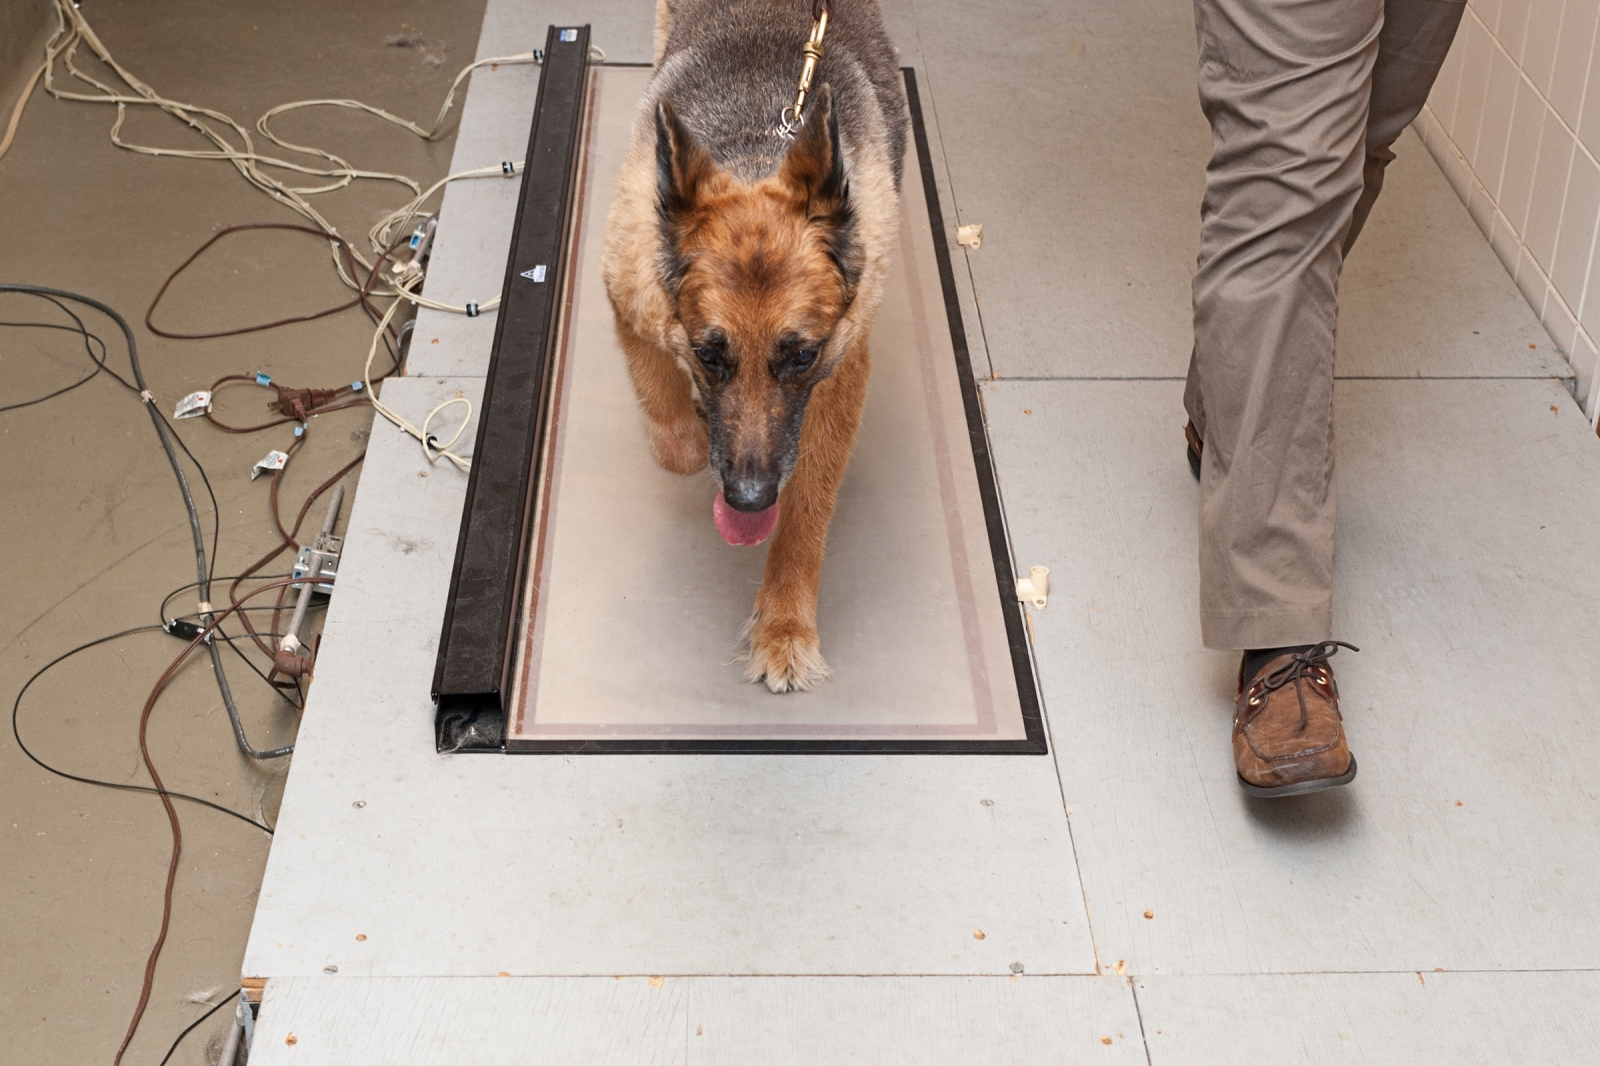 A German Shepherd takes a walk on a Tek Scan-a computerized gait analysis that monitors whether her bone pain is being controlled effectively. The device measures how well a dog is able to use the affected leg following therapy.